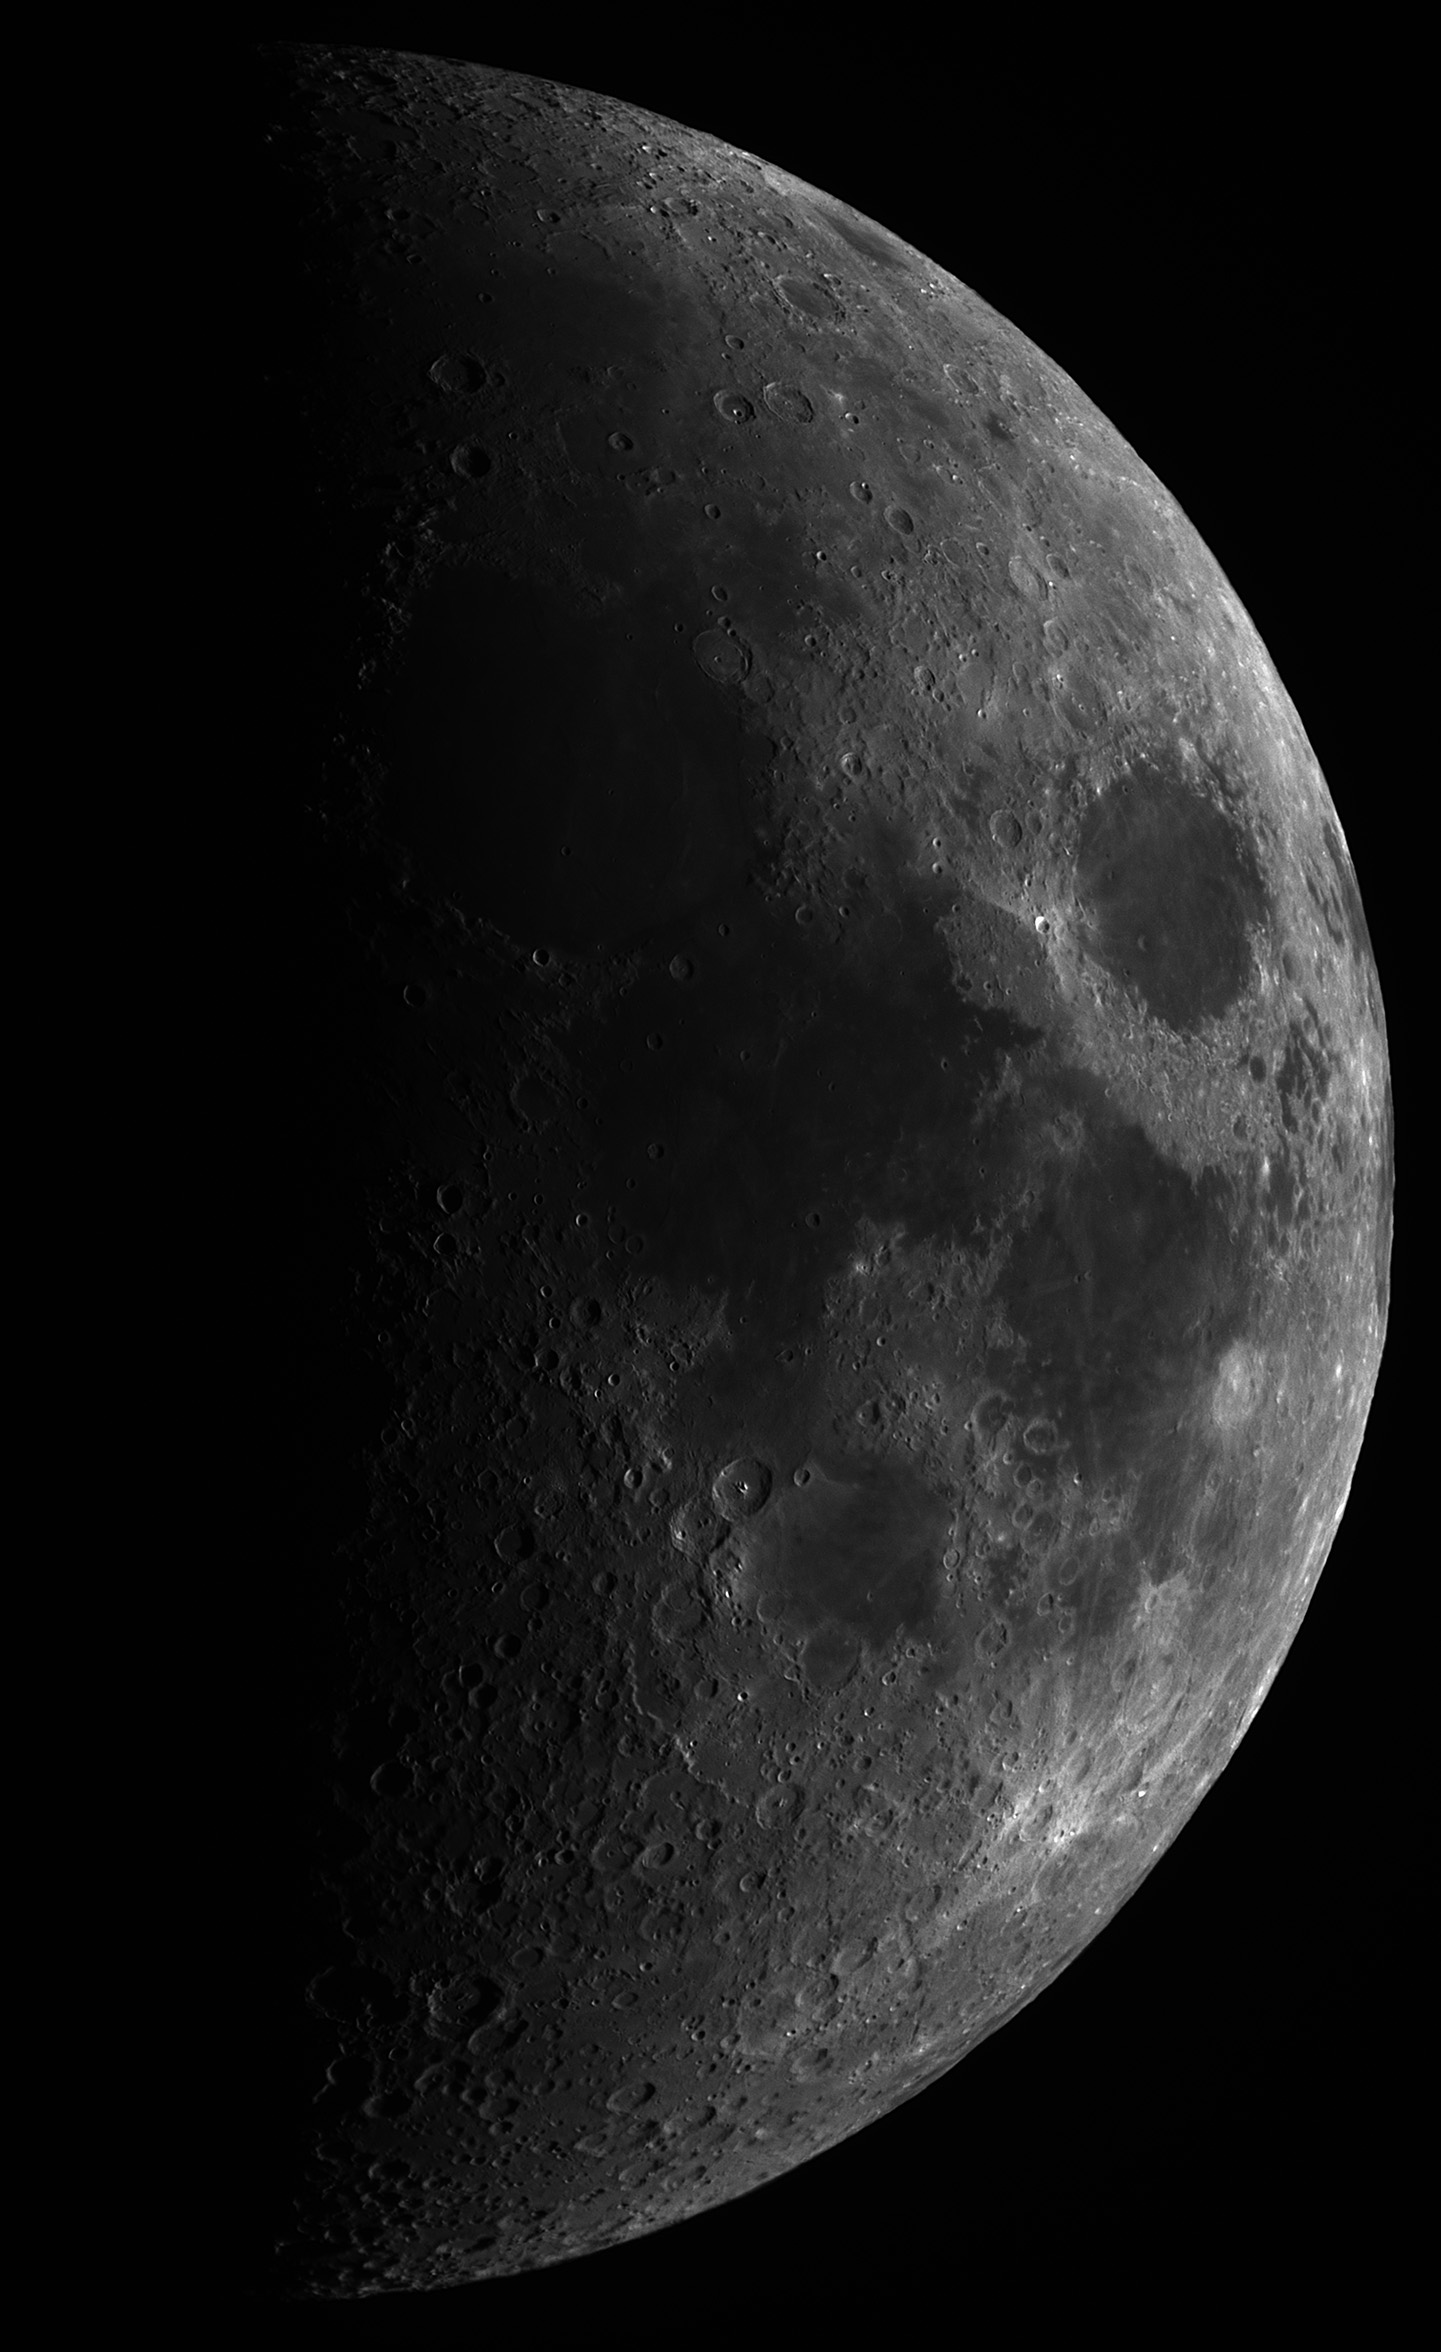 moon ap155 tt26c 1shot 50.jpg